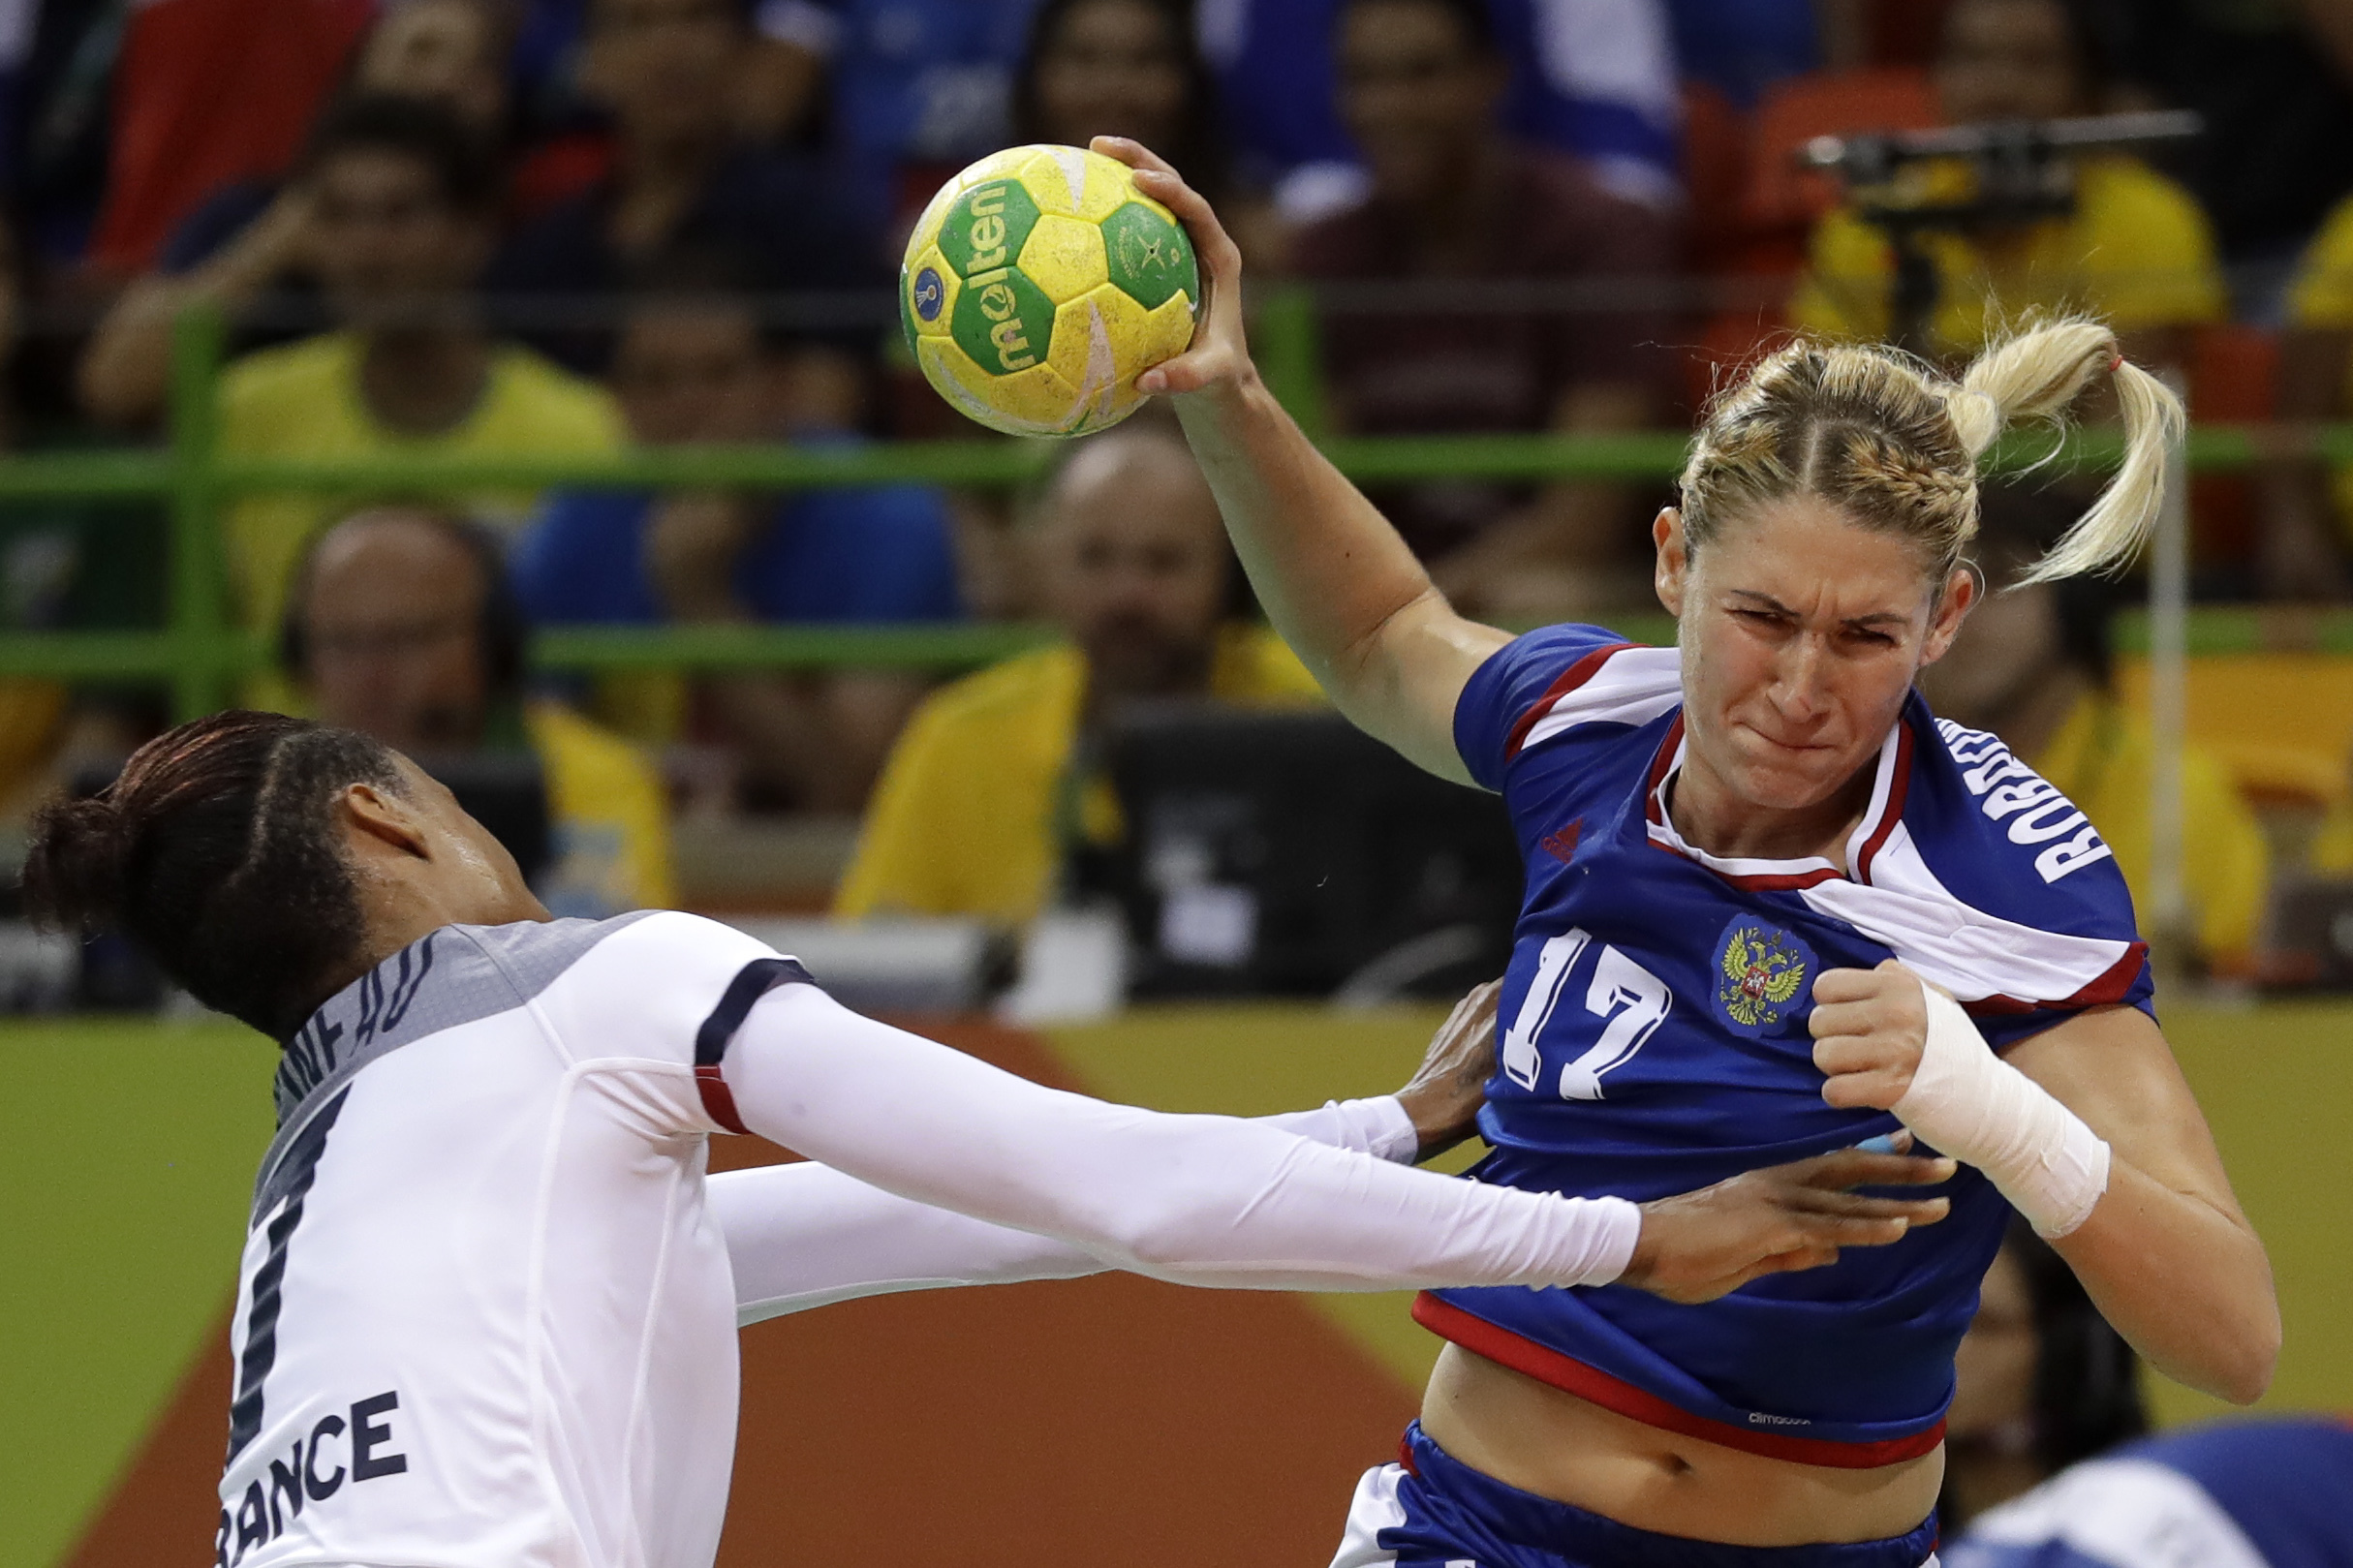 Russia's Vladlena Bobrovnikova, right, and France's Allison Pineau challenge for the ball during the women's final handball match between France and Russia at the 2016 Summer Olympics in Rio de Janeiro, Brazil, Saturday, Aug. 20, 2016. (AP Photo/Matthias